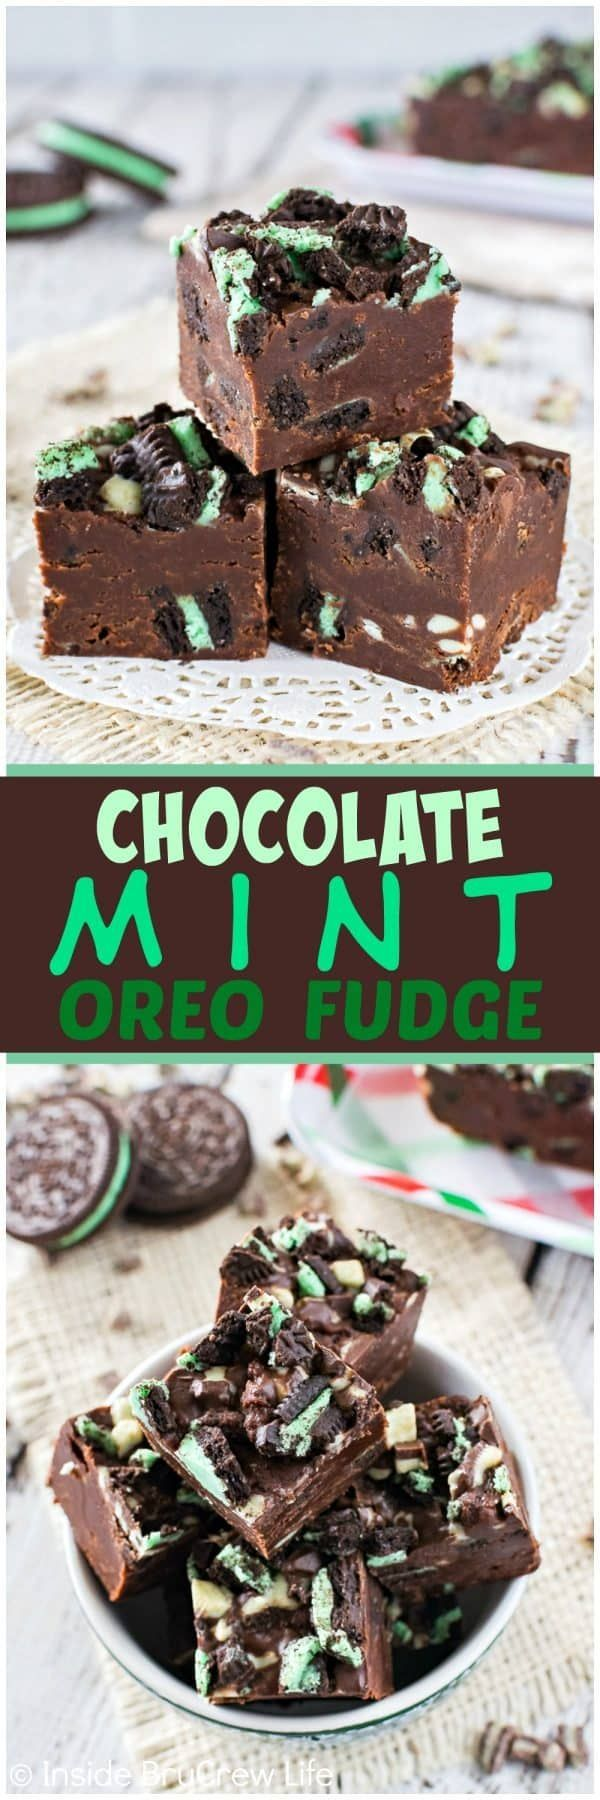 Chocolate Mint Oreo Fudge - these little creamy squares of mint fudge are loaded with cookie pieces and mint chips.